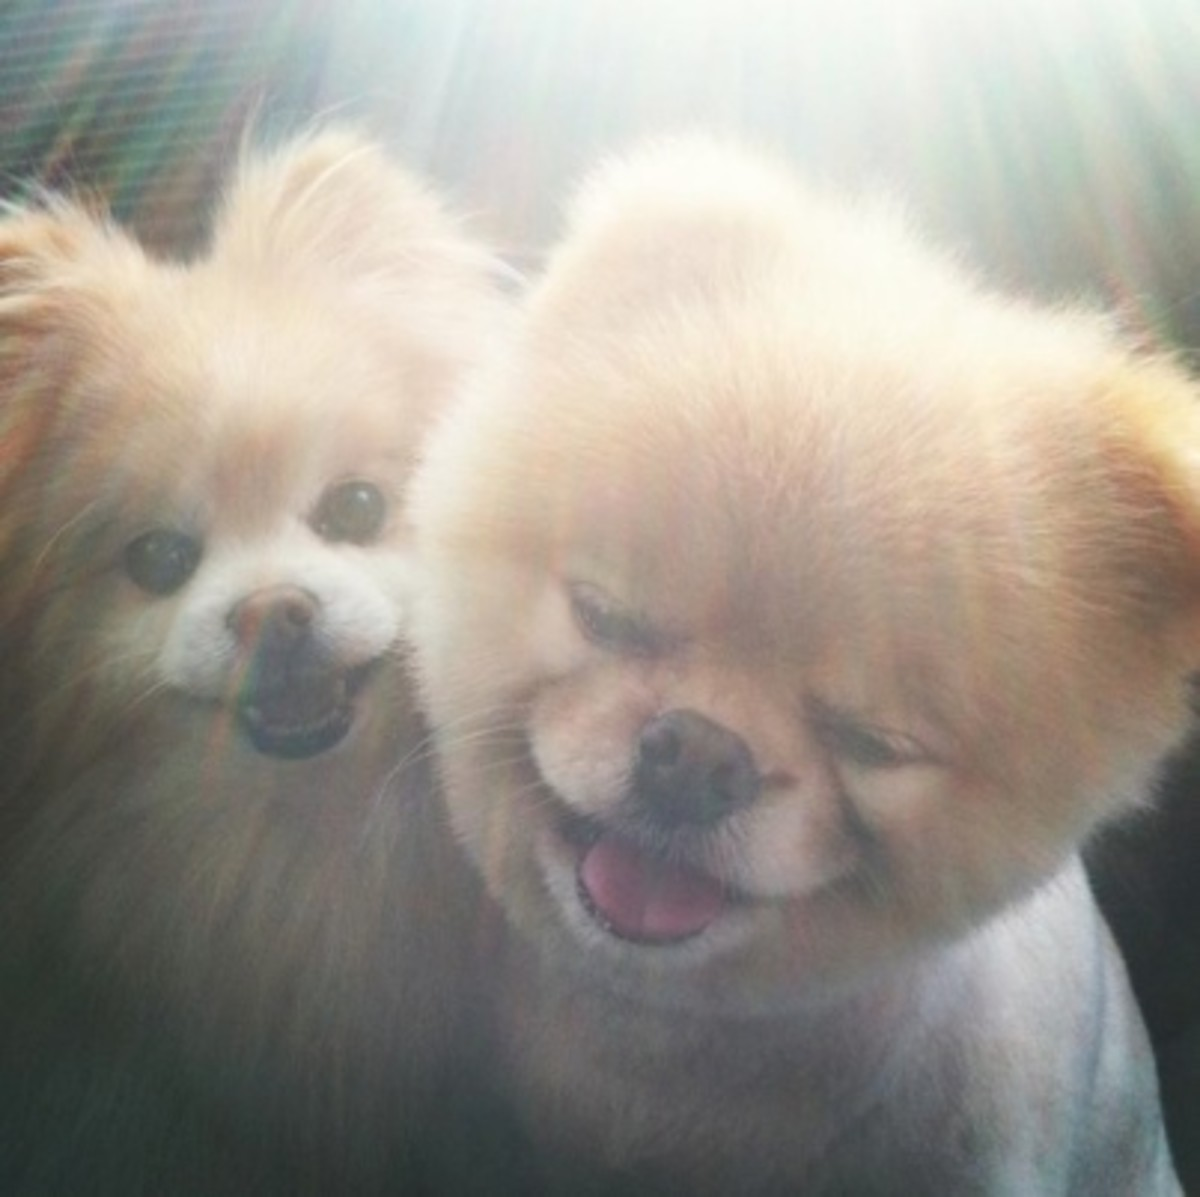 Boo the Cutest Dog and his Buddy enjoying the sun.